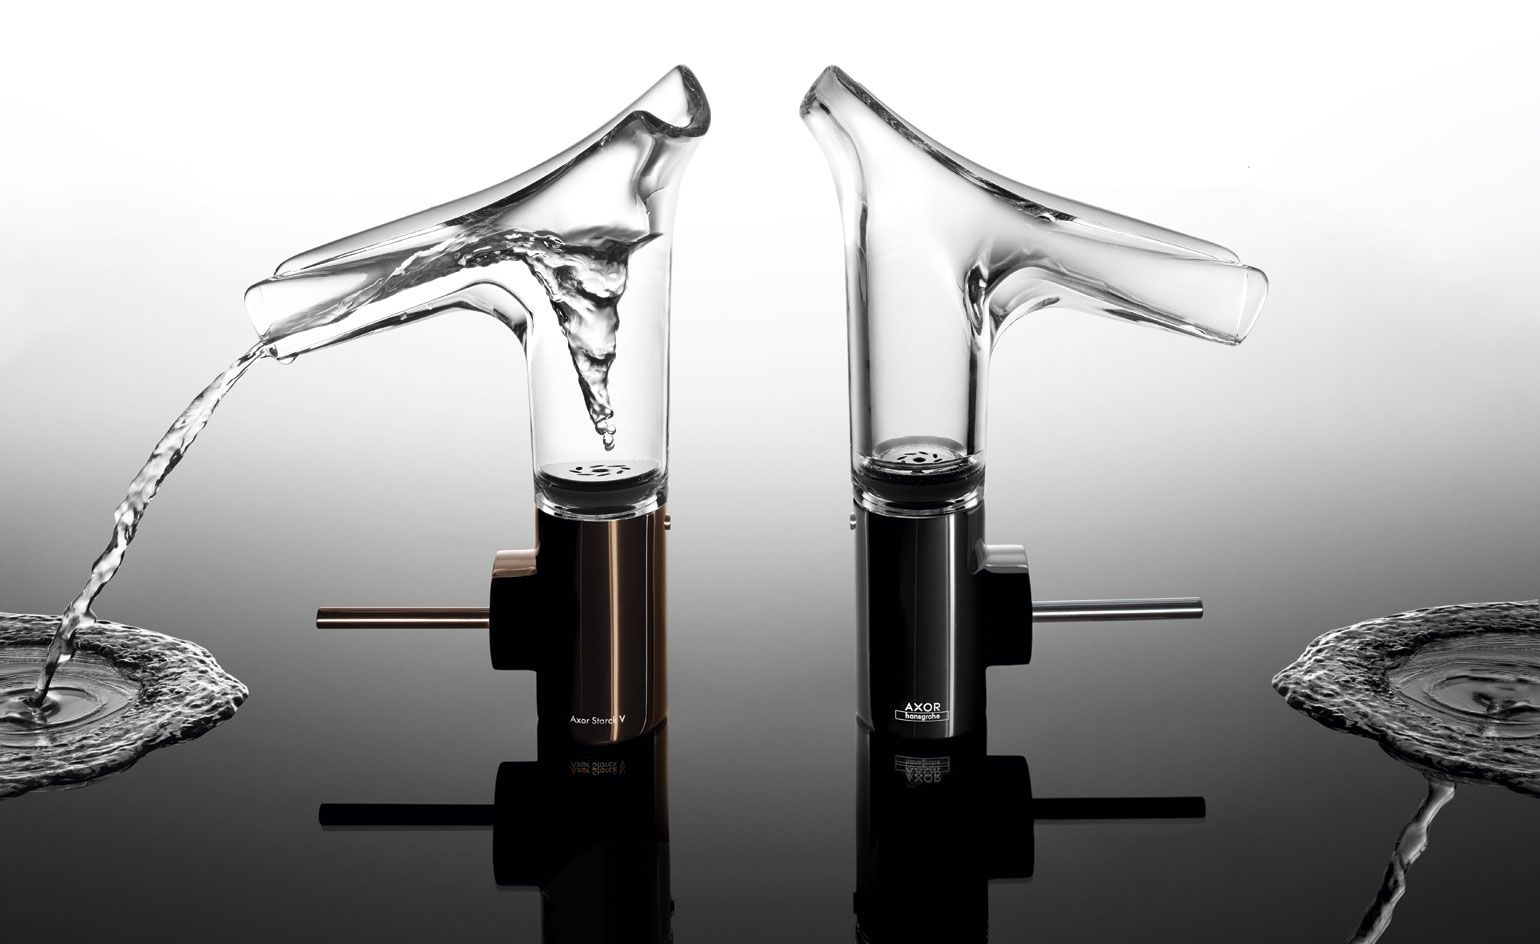 Axor Starck V Faucet Design Awards 2015 In 2019 Design Awards Beautiful